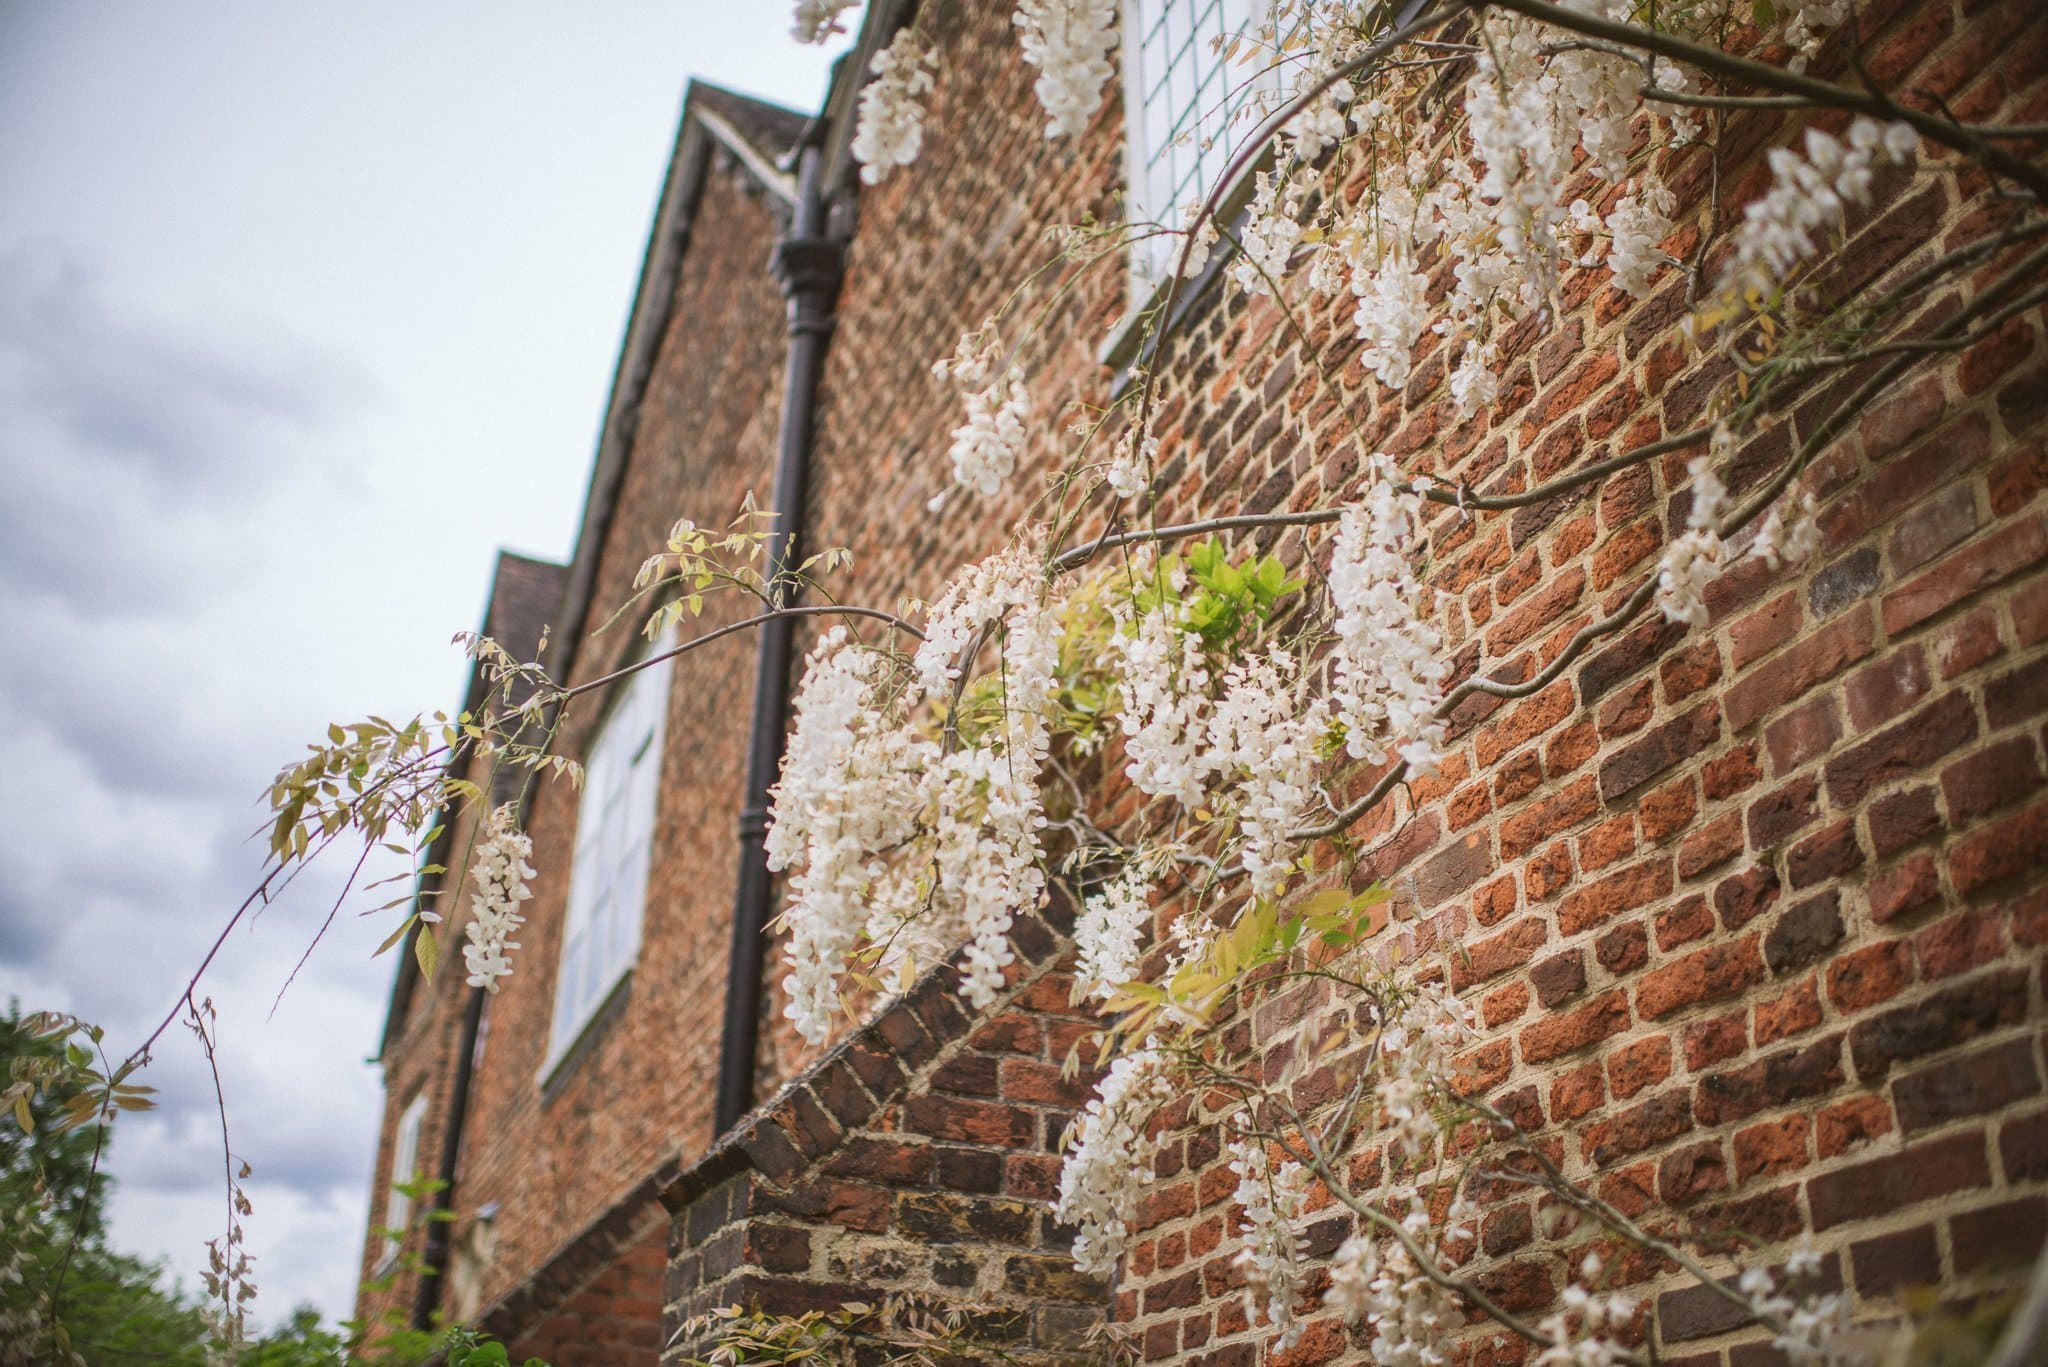 A shot of the wisteria climbing the red brick walls at Fulham Palace